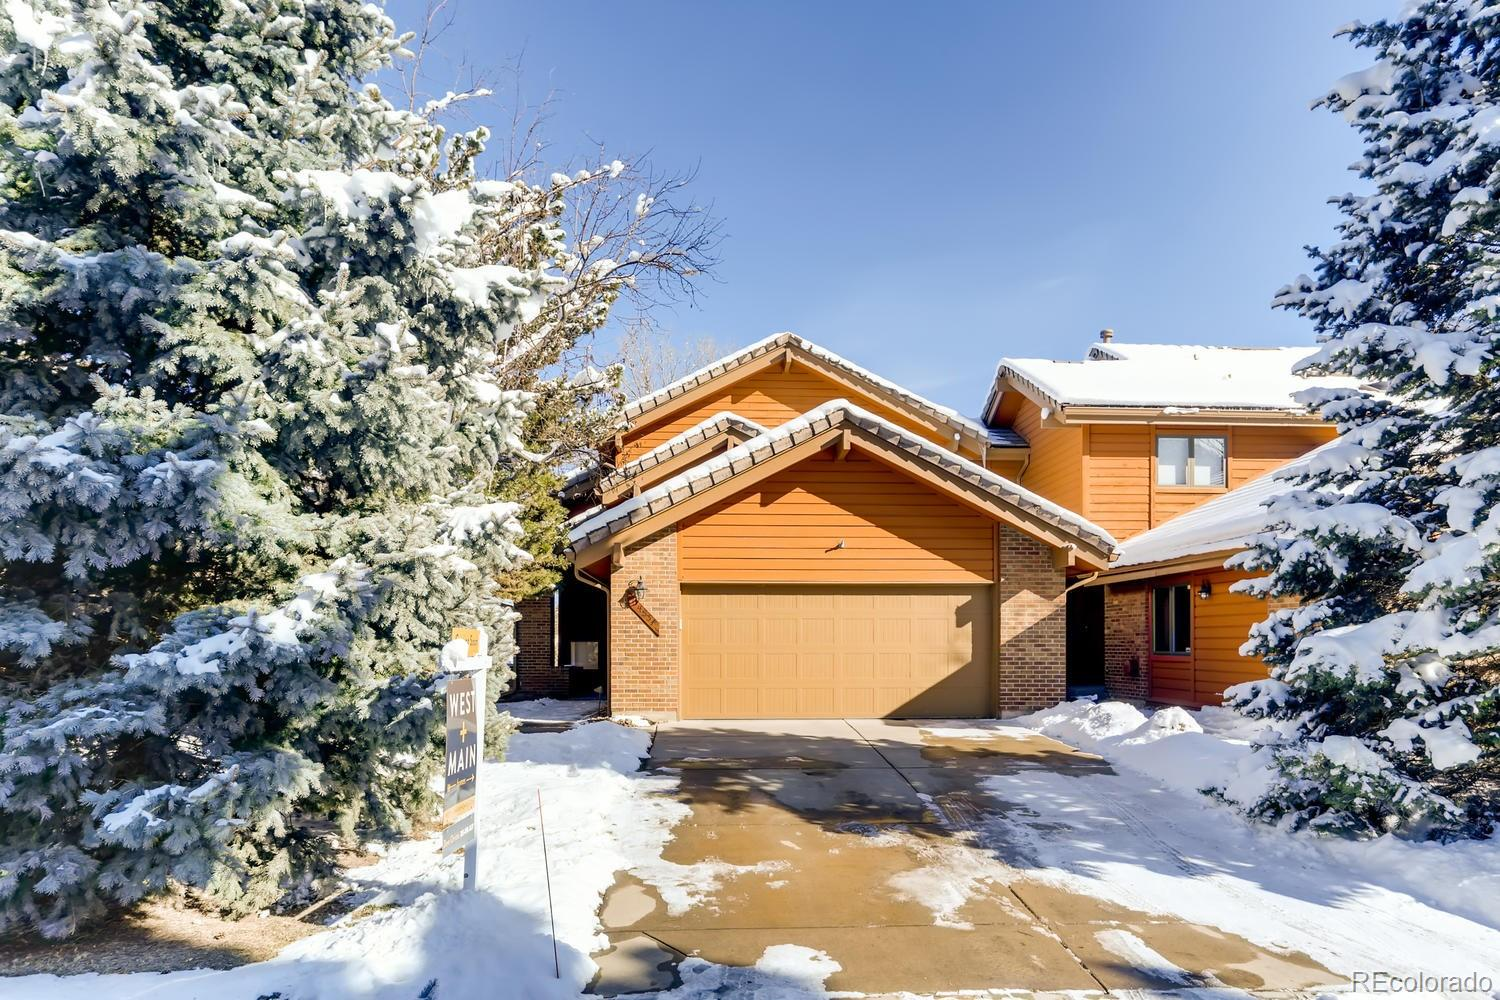 MLS# 2321846 - 19 - 5453 Coyote Canyon Way #A, Morrison, CO 80465